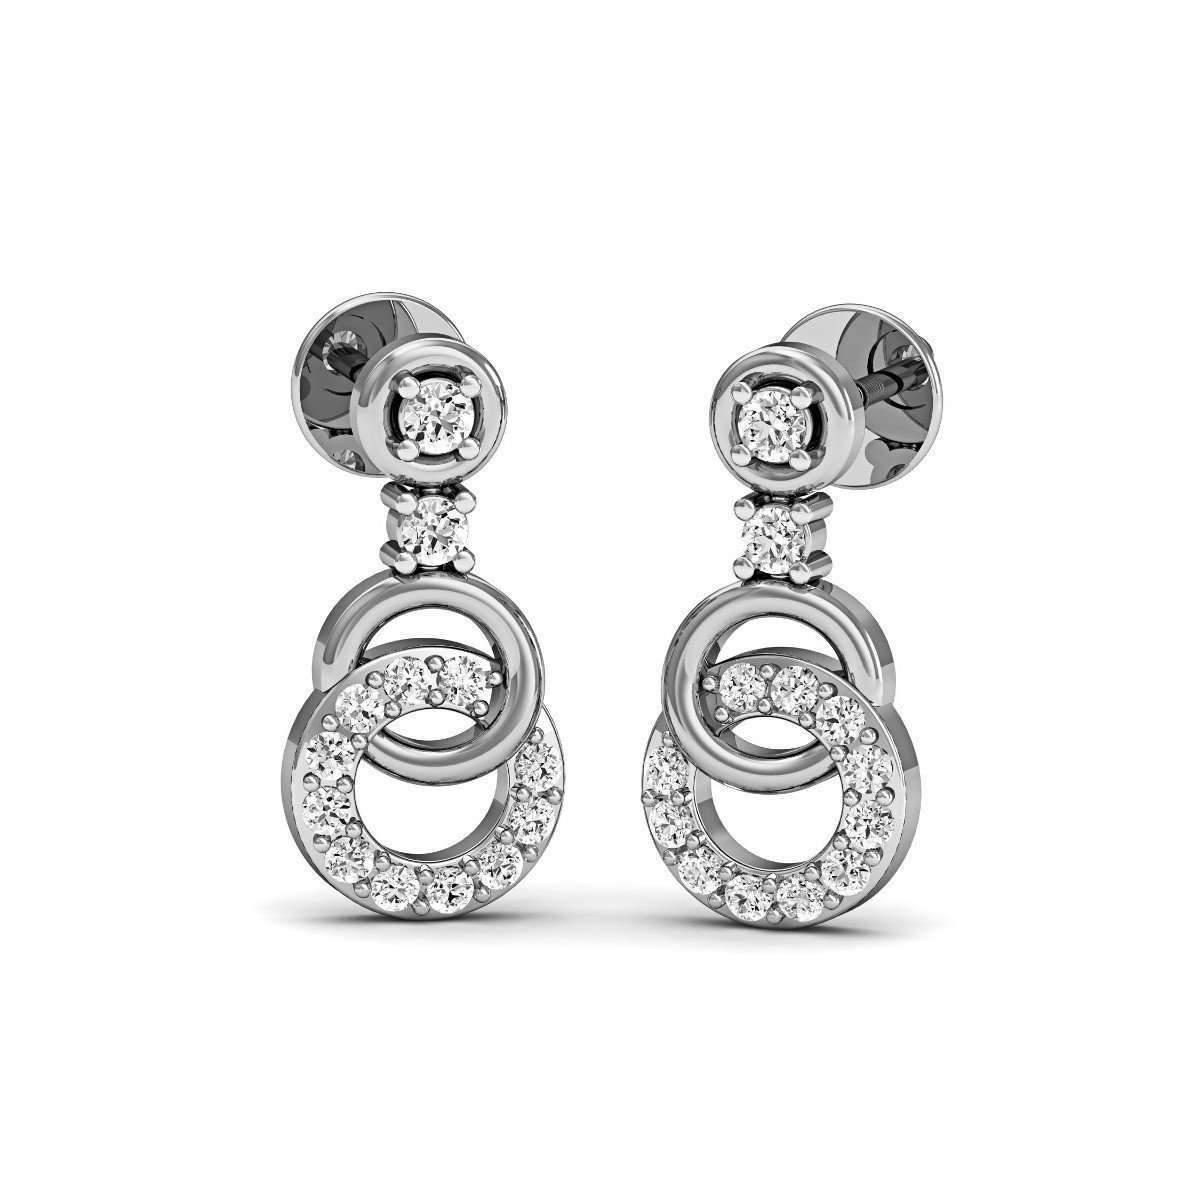 Diamoire Jewels Matchless Diamond Stud Earrings in 18kt White Gold iyiIt68